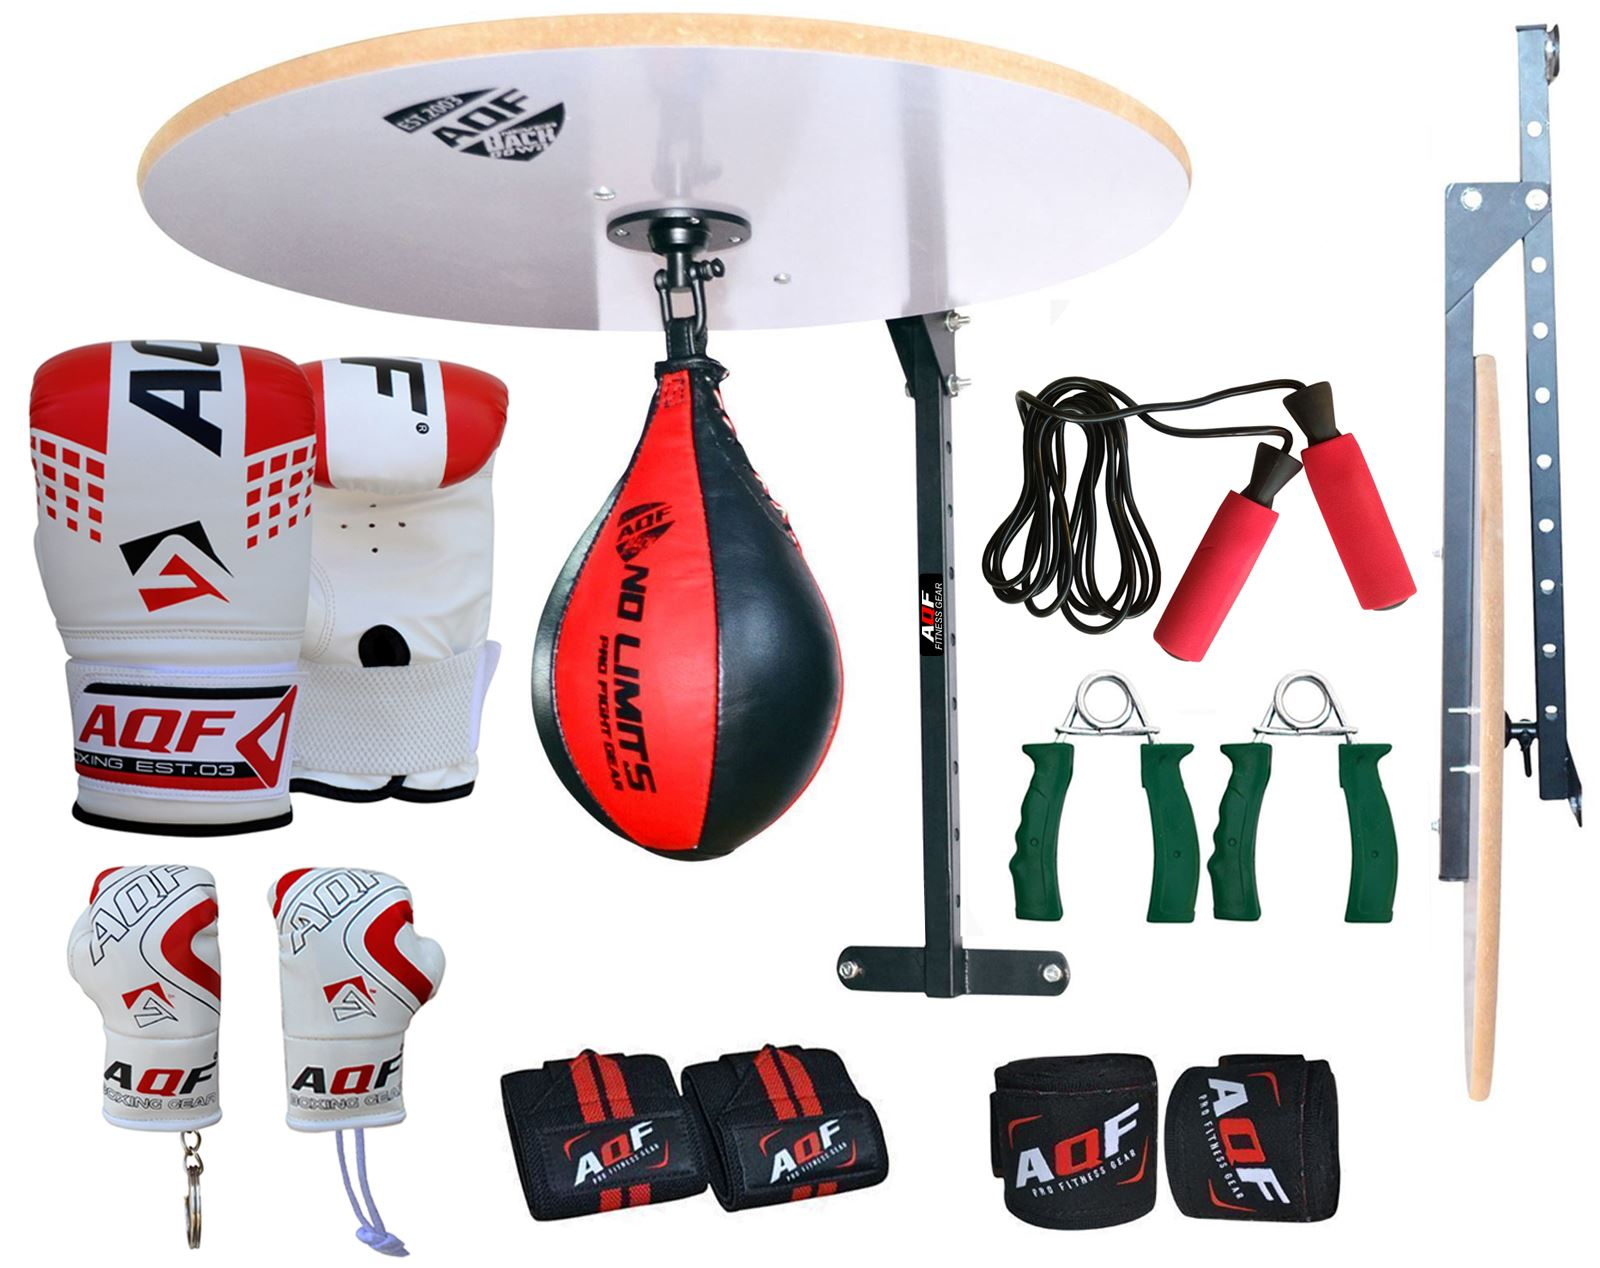 R 1x Speed Ball Platform Swivel Stand Boxing Gloves Bracket Cow Hide Leather